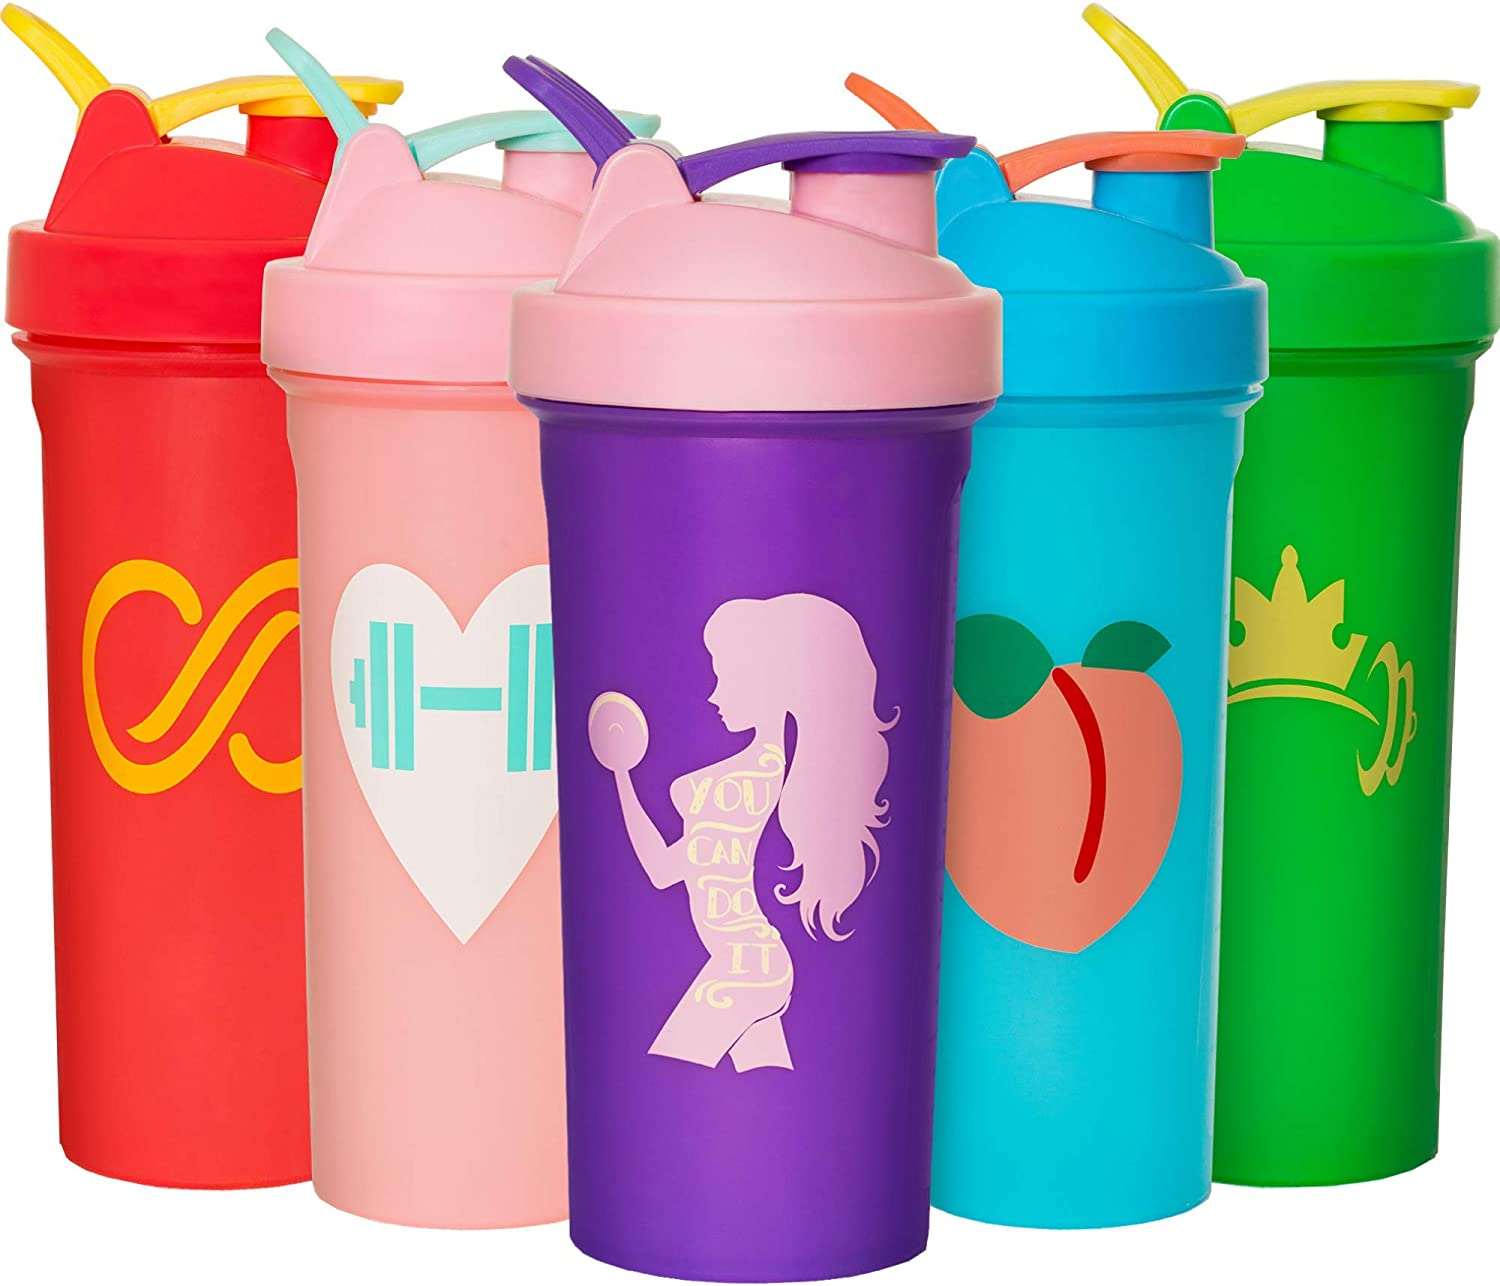 JEELA SPORTS 5 Pack Shaker Bottles for Protein Mixes - 24 Oz Shaker Cups for Protein Shakes with Mixing Ball - Bpa Free Protein Shaker Bottle Set - Leakproof Design - Perfect Gym Fitness Gift